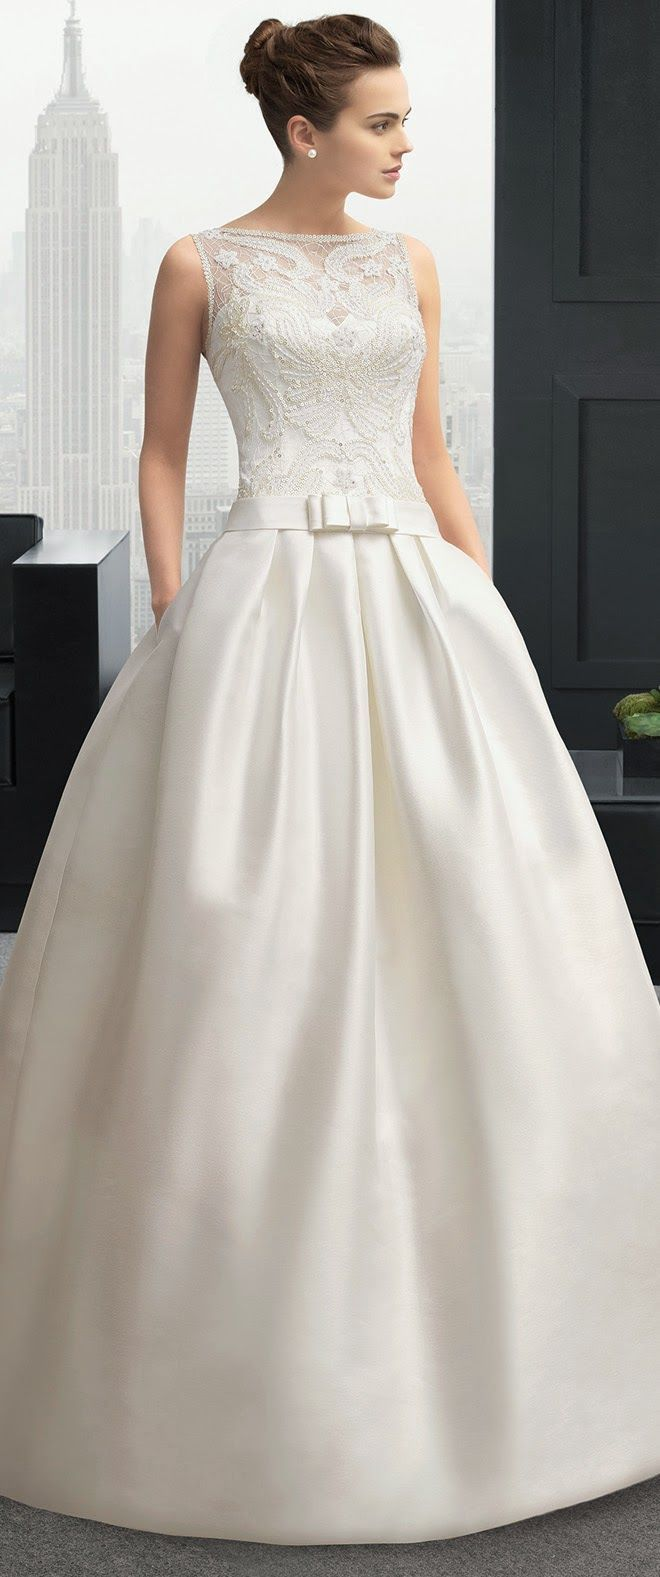 Two by Rosa Clara 2015 Bridal Collection - Belle the Magazine . The Wedding Blog For The Sophisticated Bride.